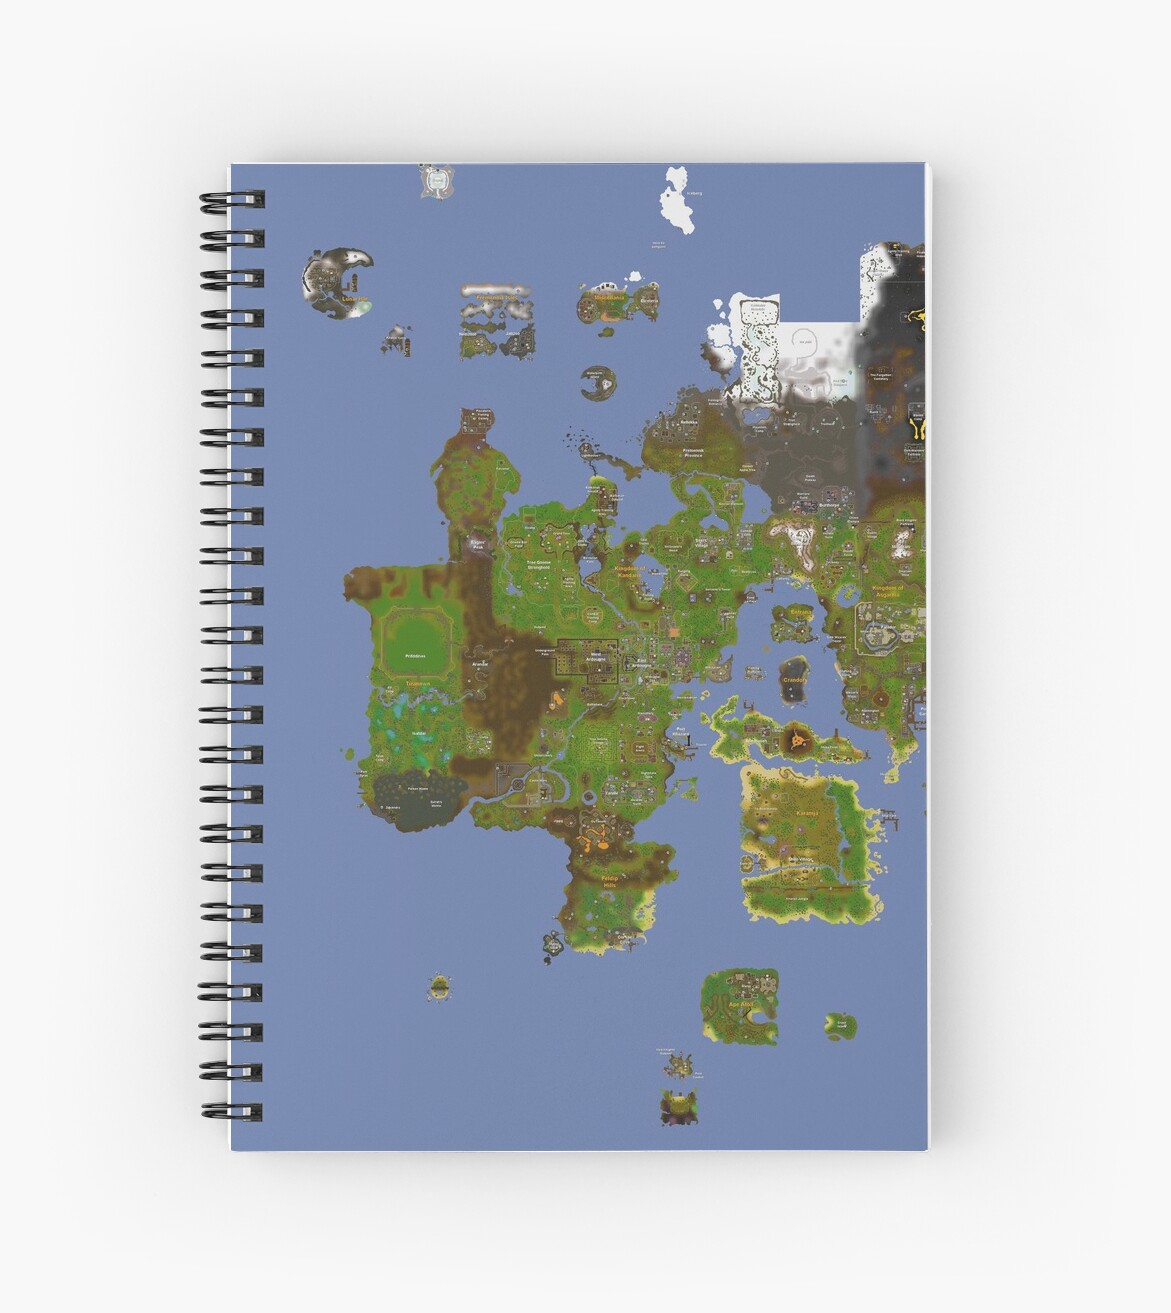 Oldschool runescape world map spiral notebooks by ragsmaroon oldschool runescape world map by ragsmaroon gumiabroncs Choice Image